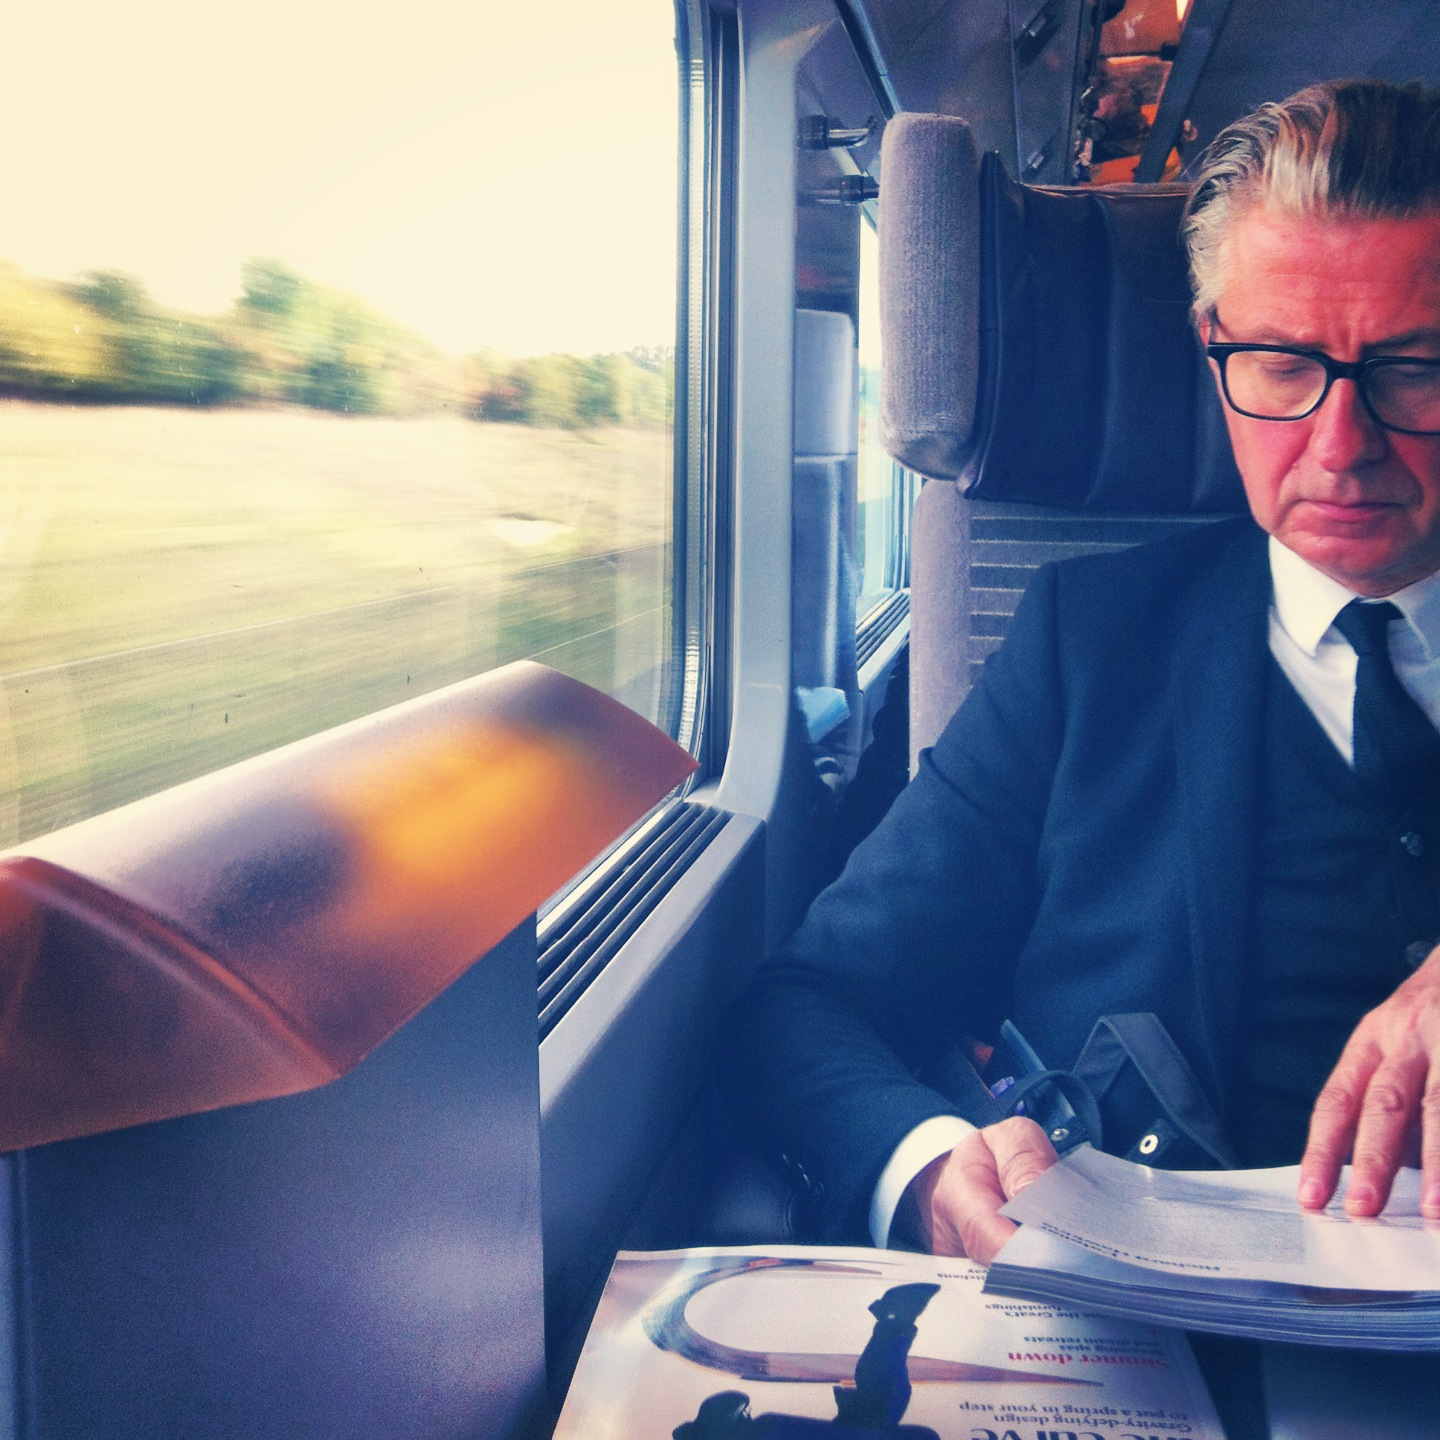 A Parisian in a sharp suit on the Eurostar